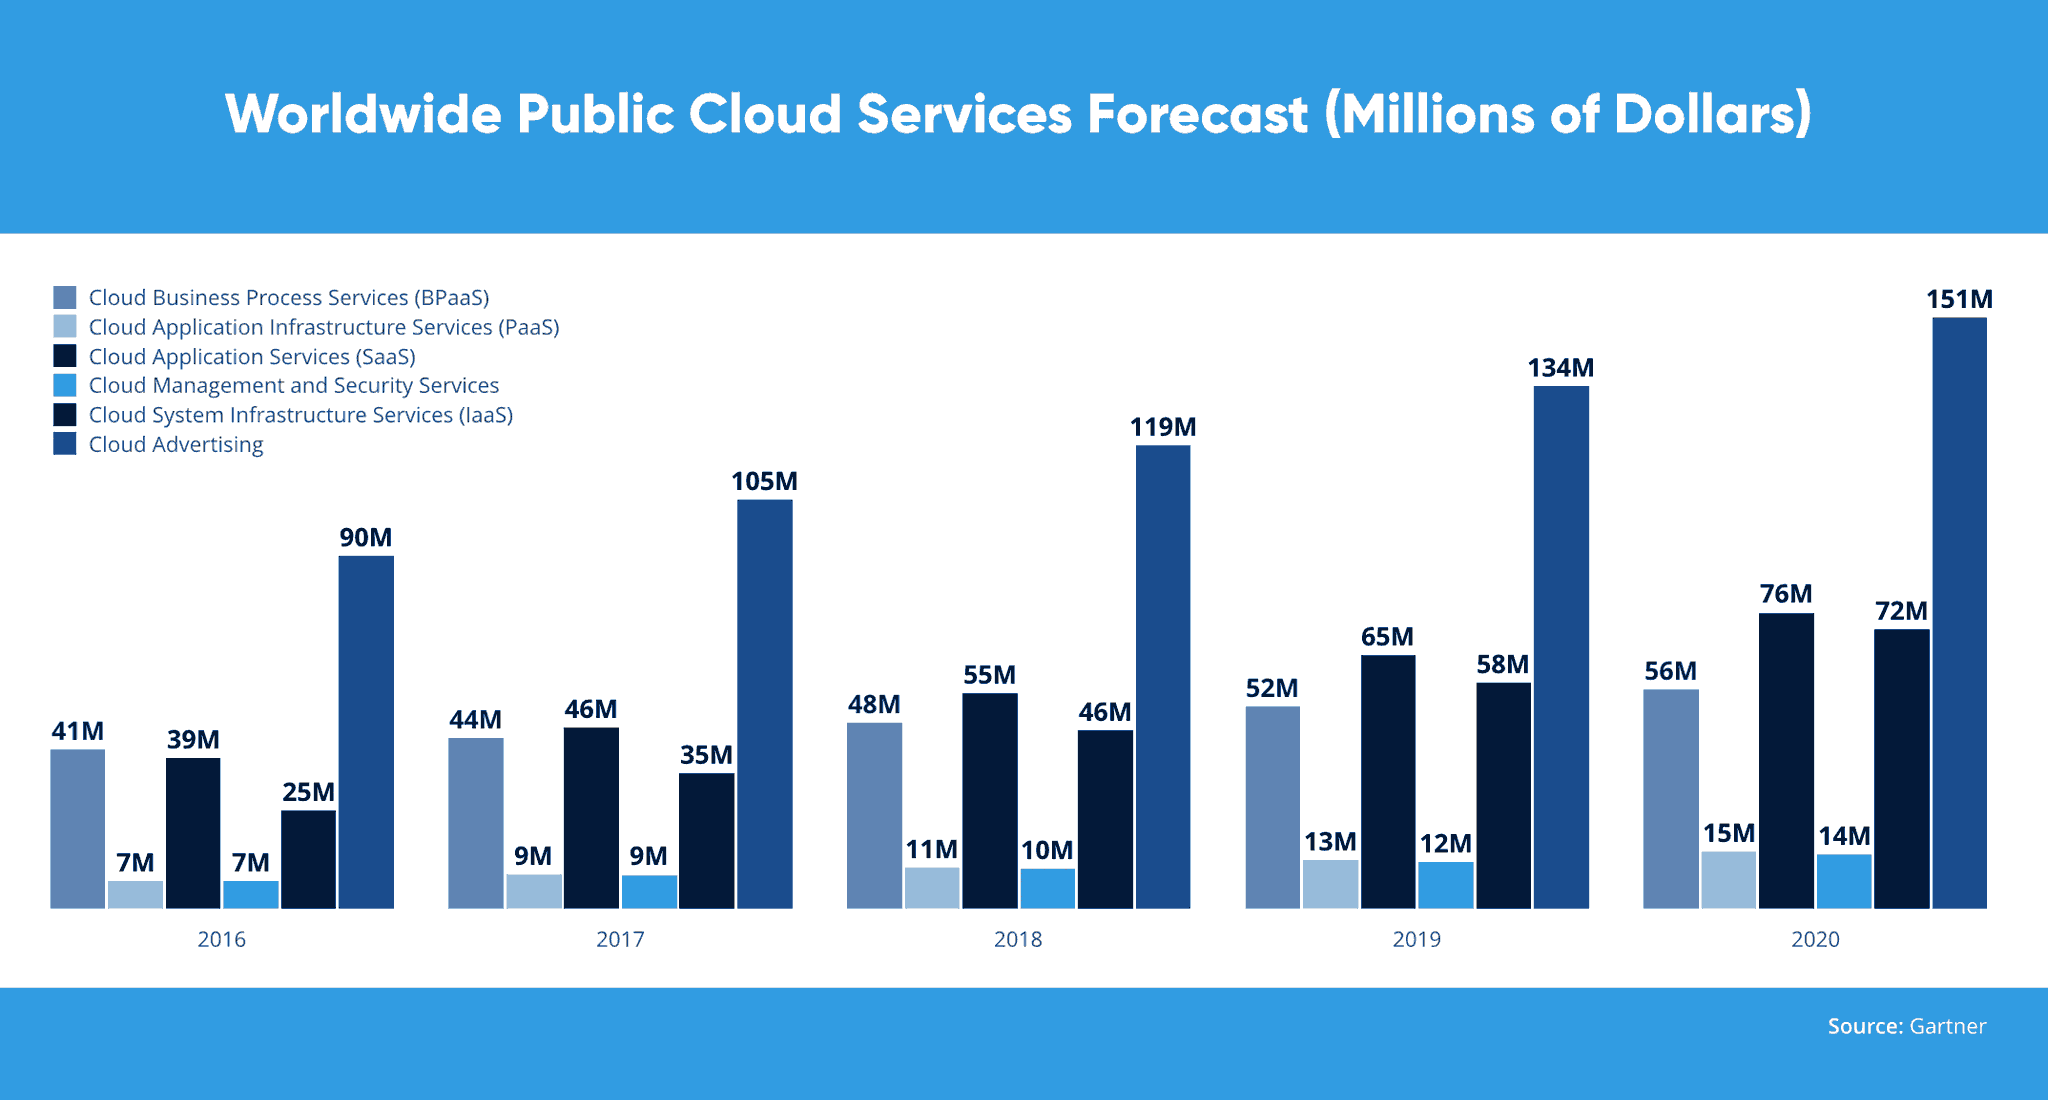 Worldwide Public Cloud Services Forecast (Millions of Dollars)